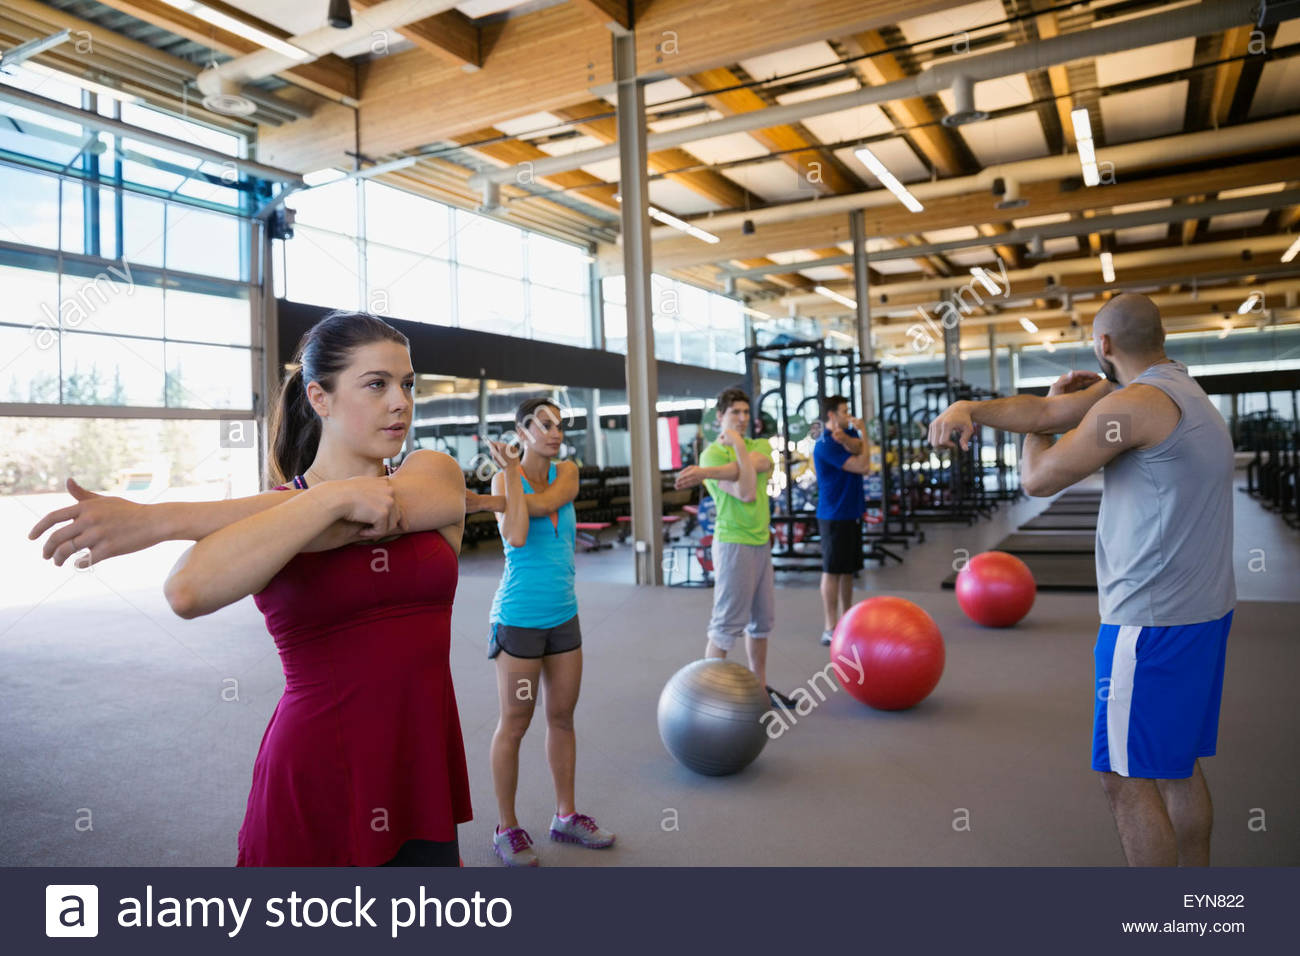 Exercise class stretching arms in gym - Stock Image